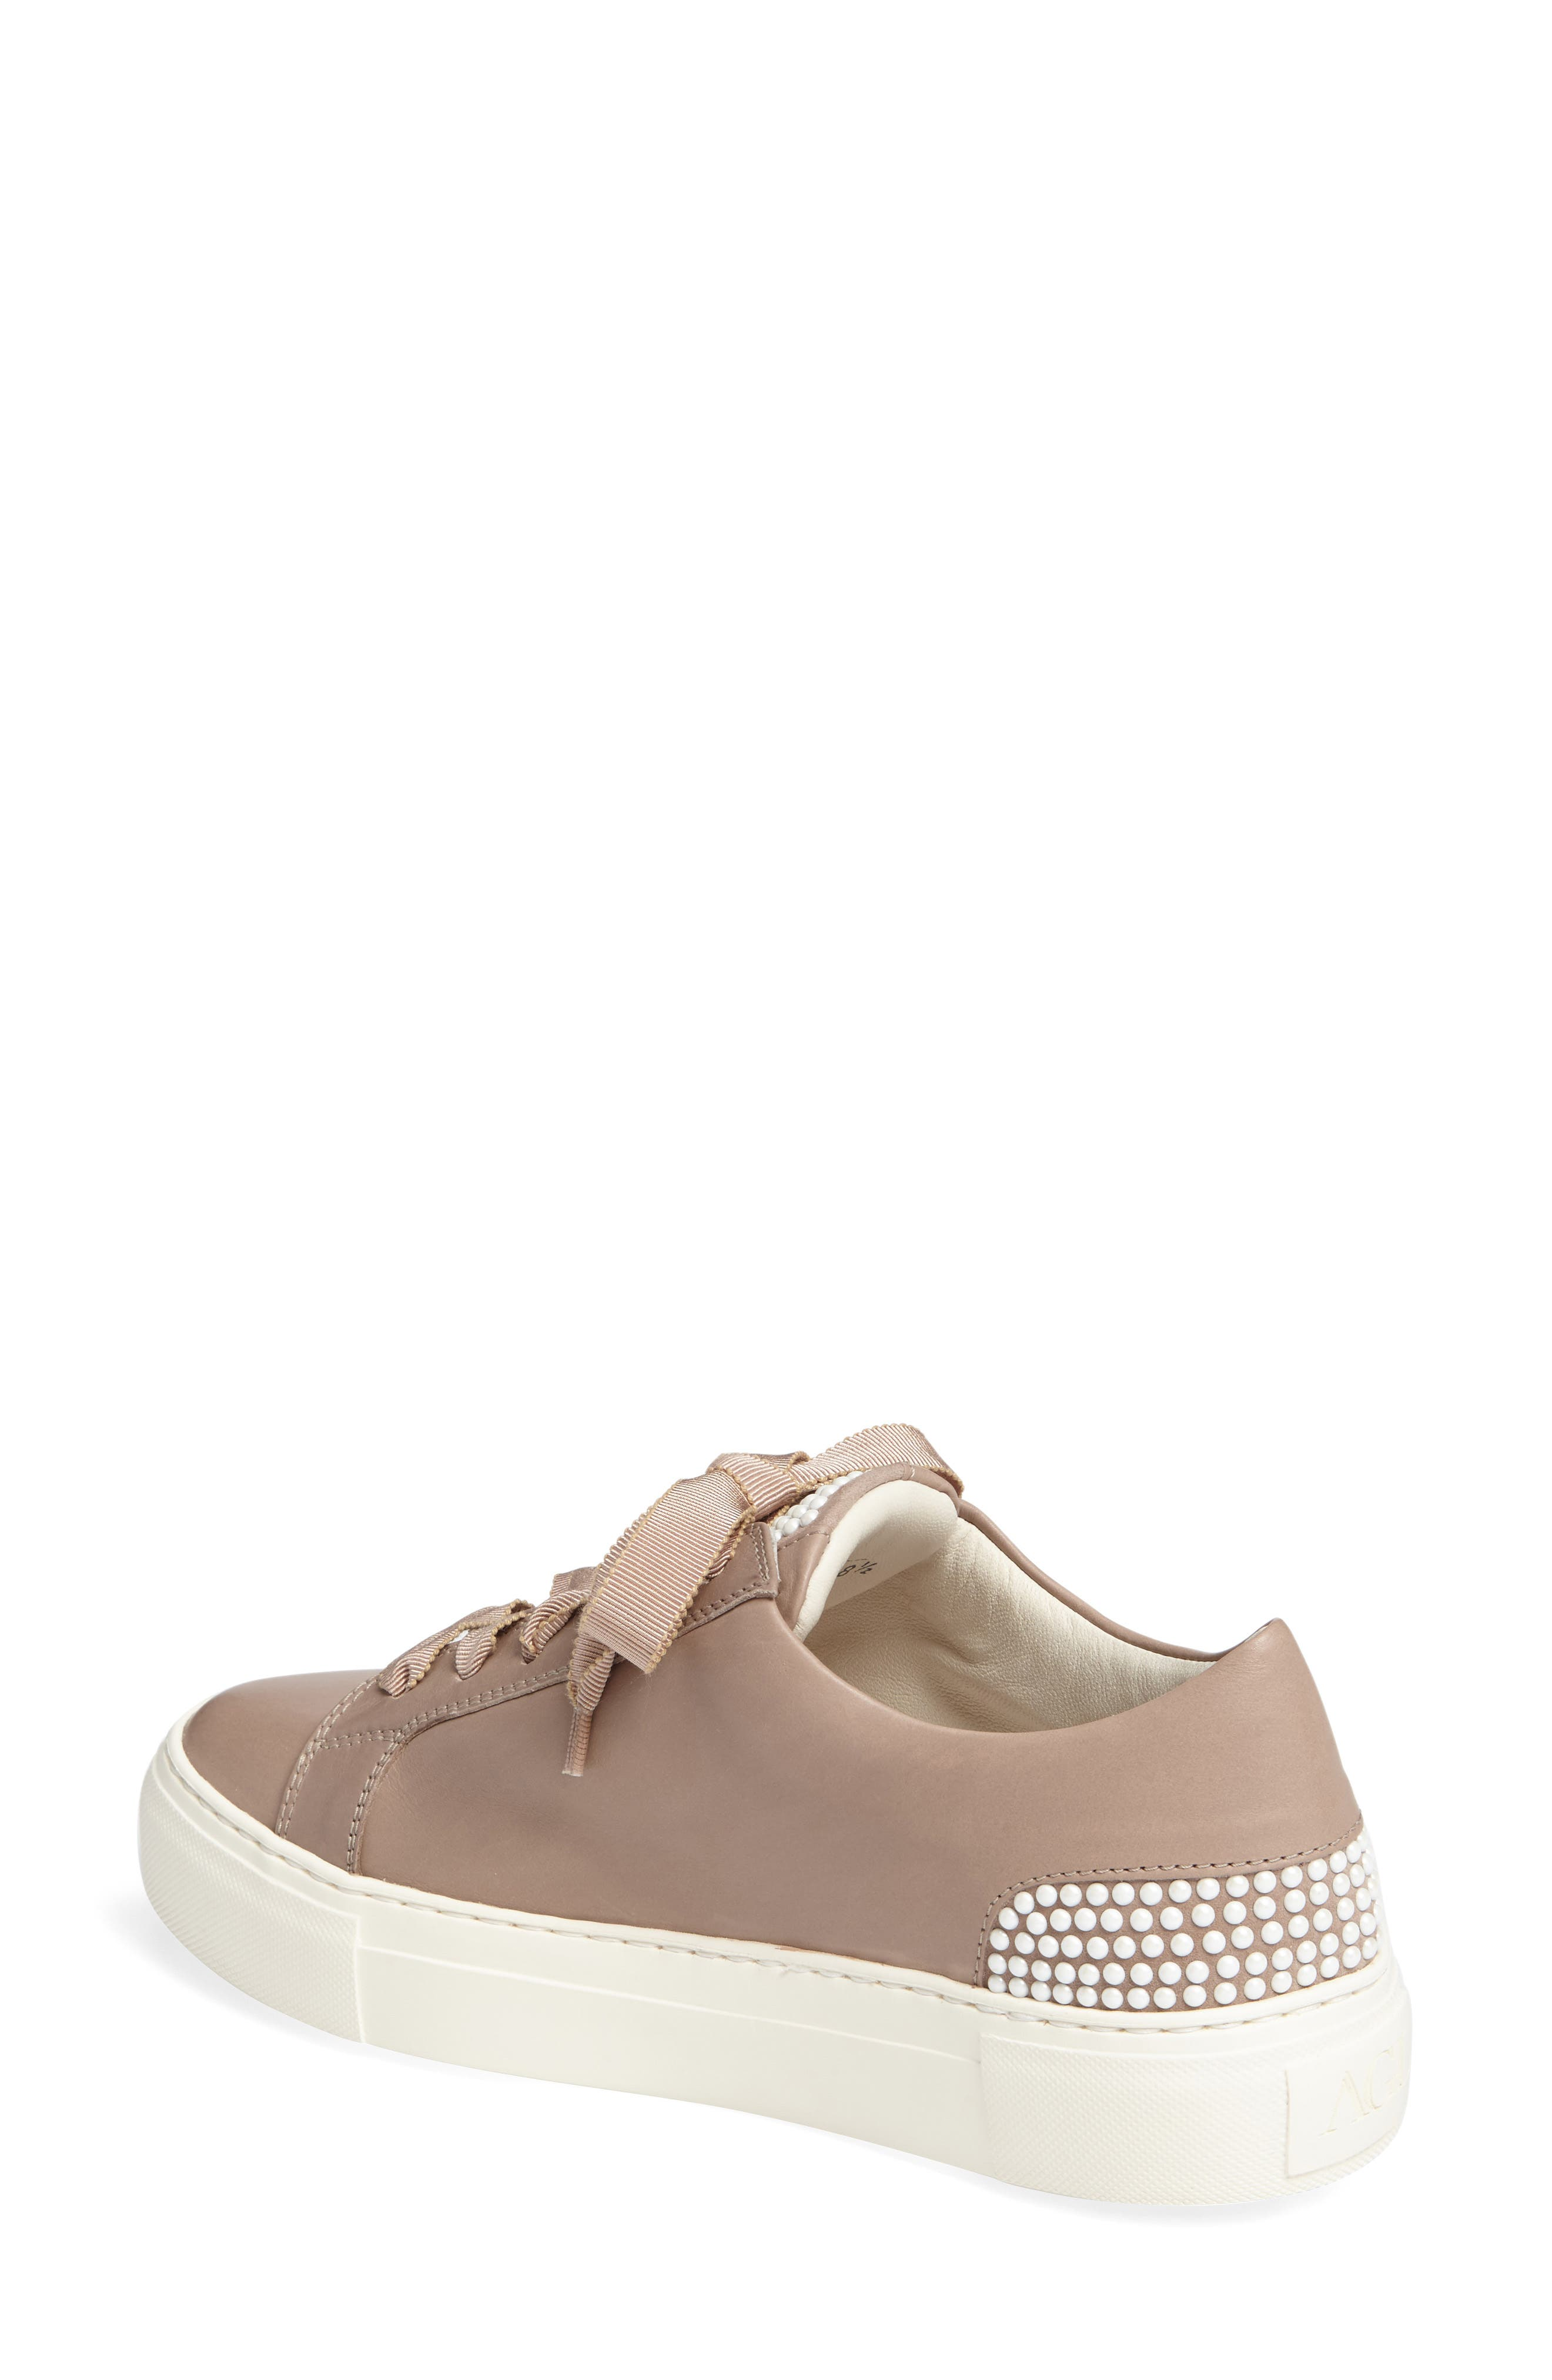 Pearl Sneaker,                             Alternate thumbnail 2, color,                             Pale Leather